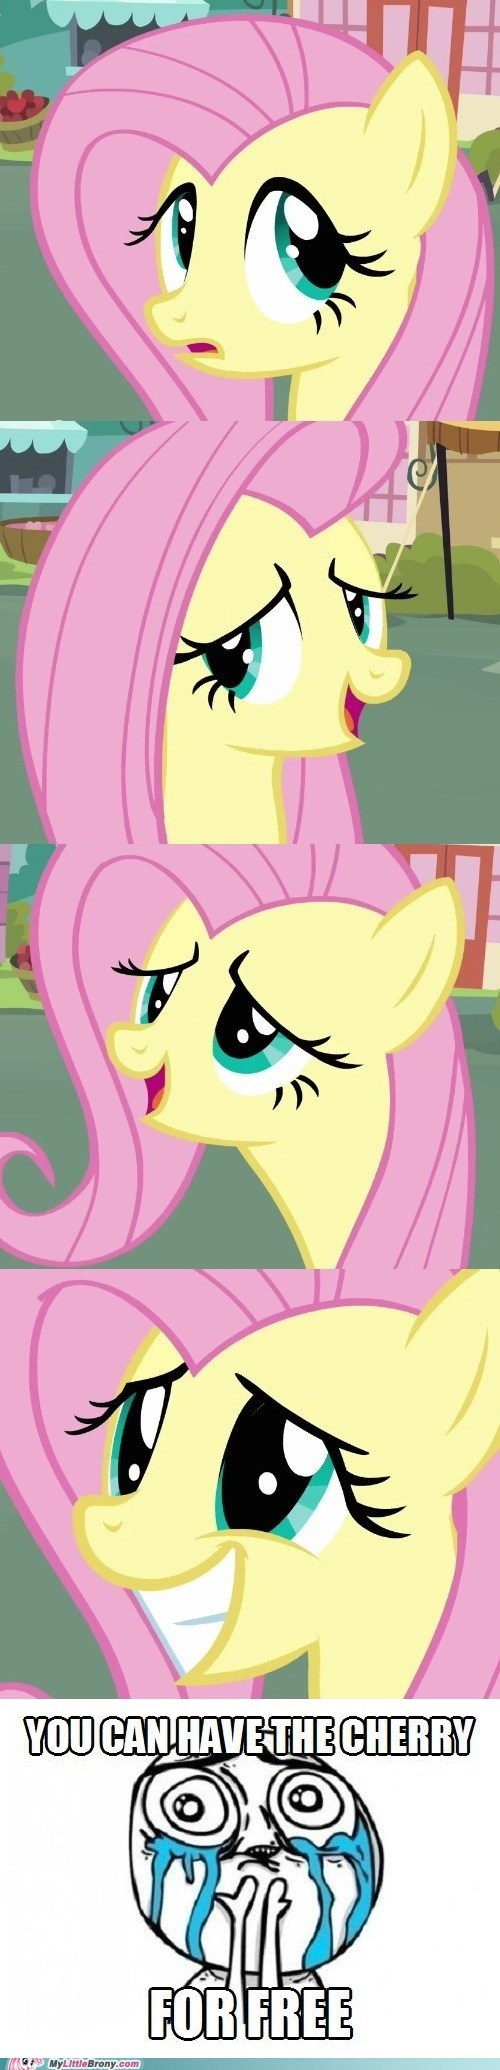 bits,cherry,fluttershy,for free,TV